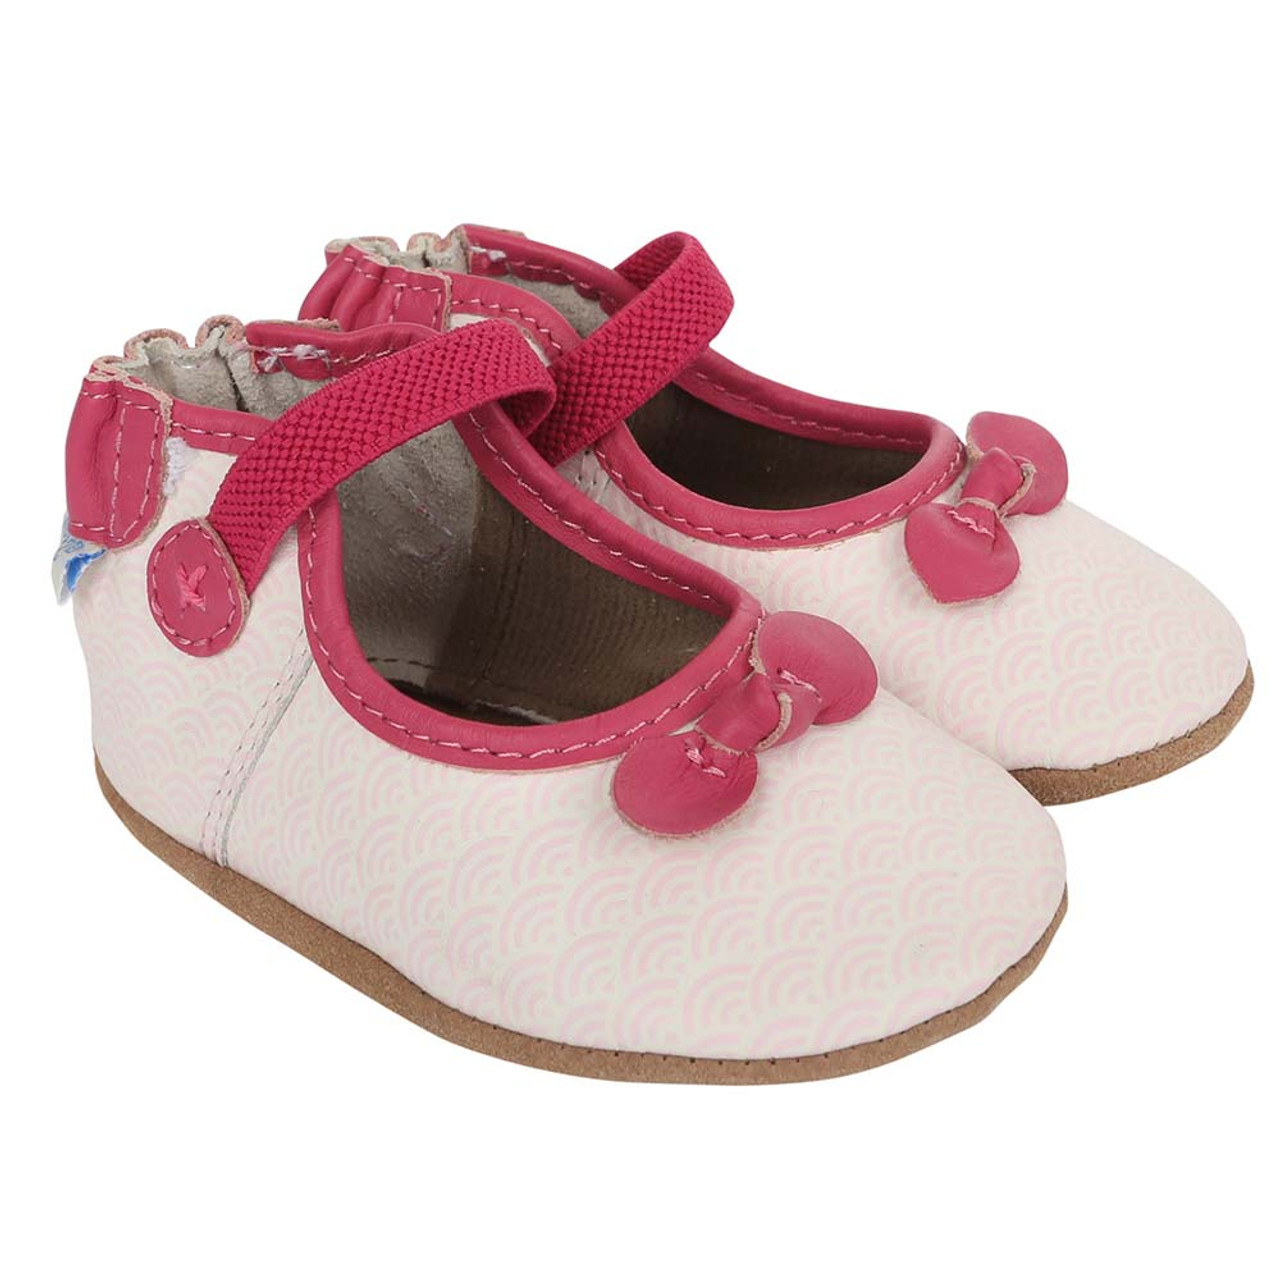 Baby Shoes Seashell Mary Jane Soft Soles Girls Baby Infant